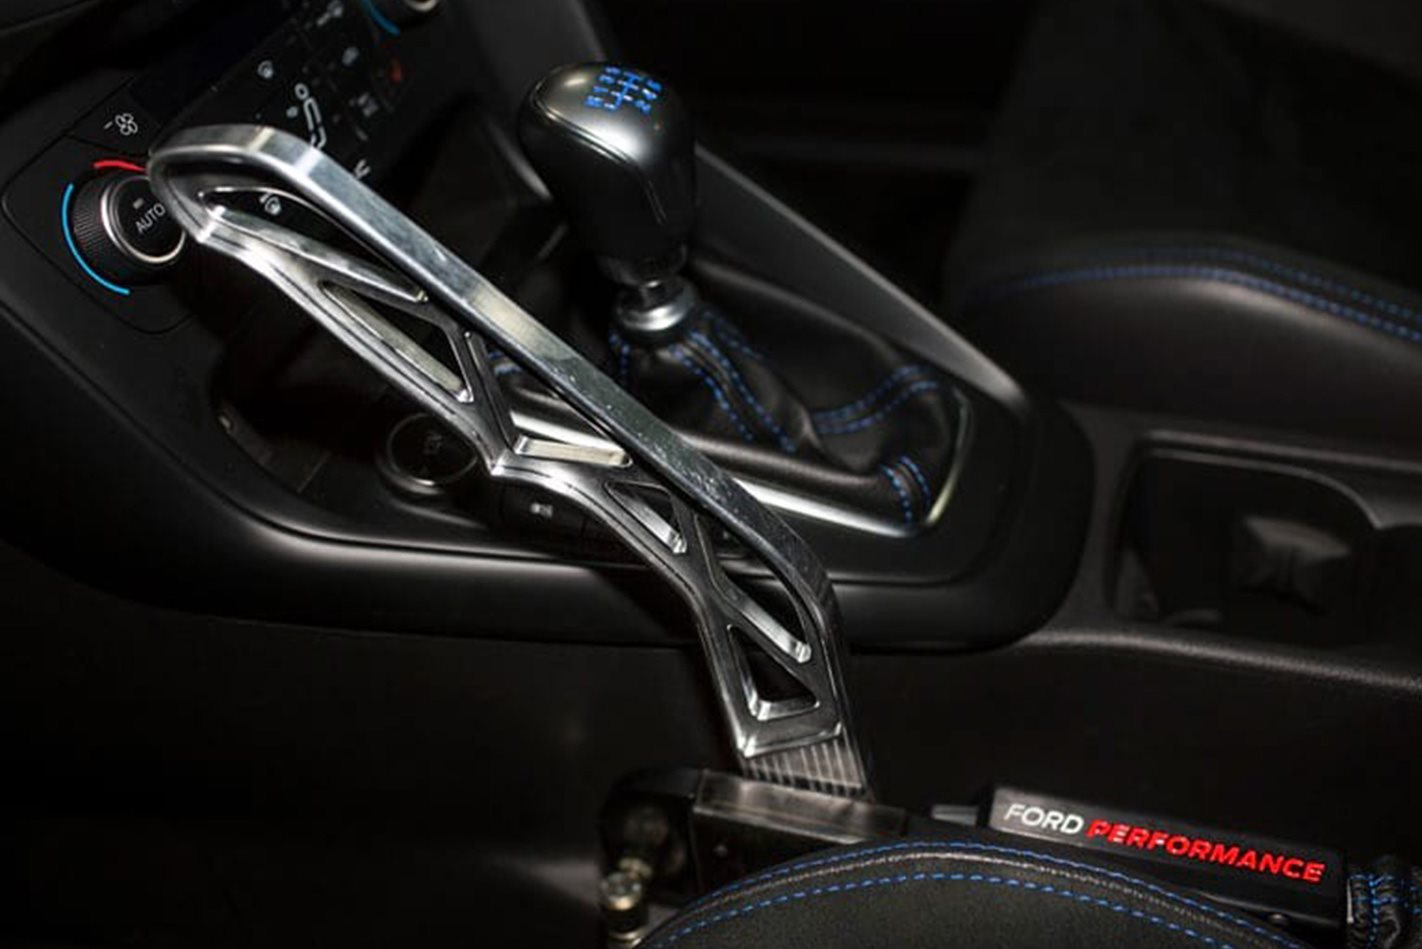 Ford-Focus-RS-gearstick.jpg